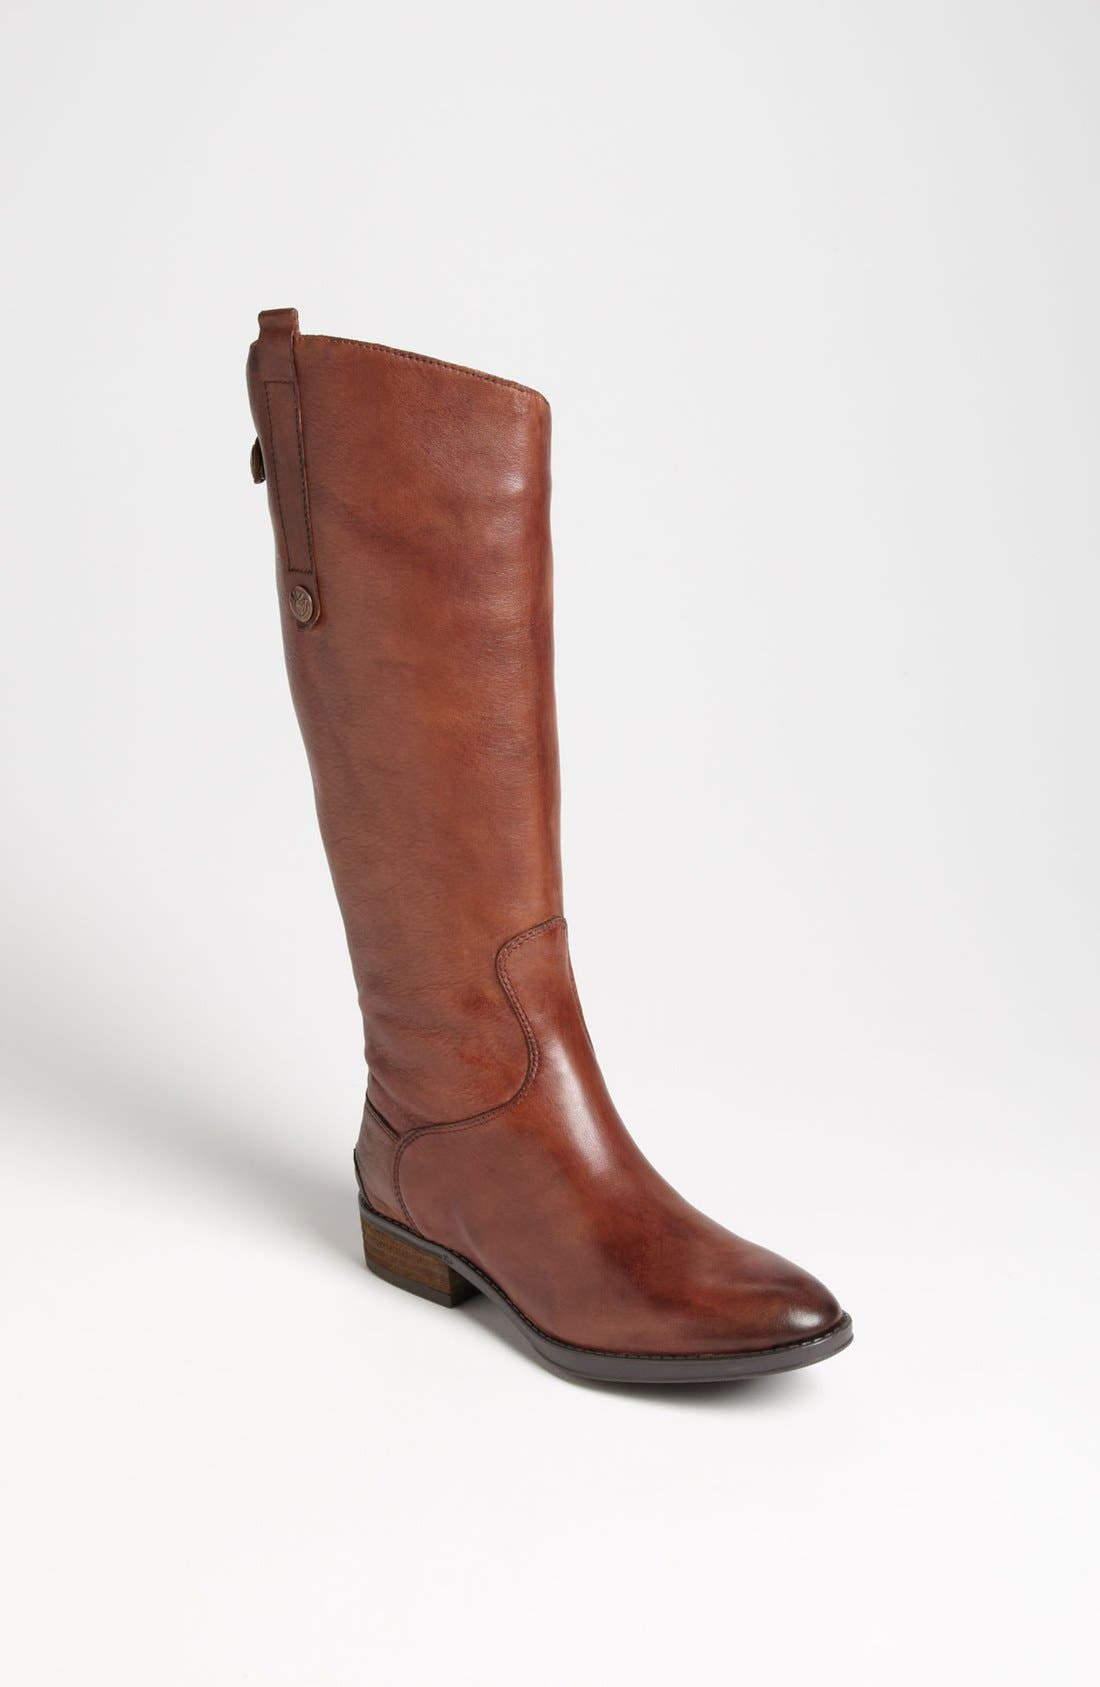 Alternate Image 1 Selected - Sam Edelman 'Penny' Boot (Women) (Wide Calf)